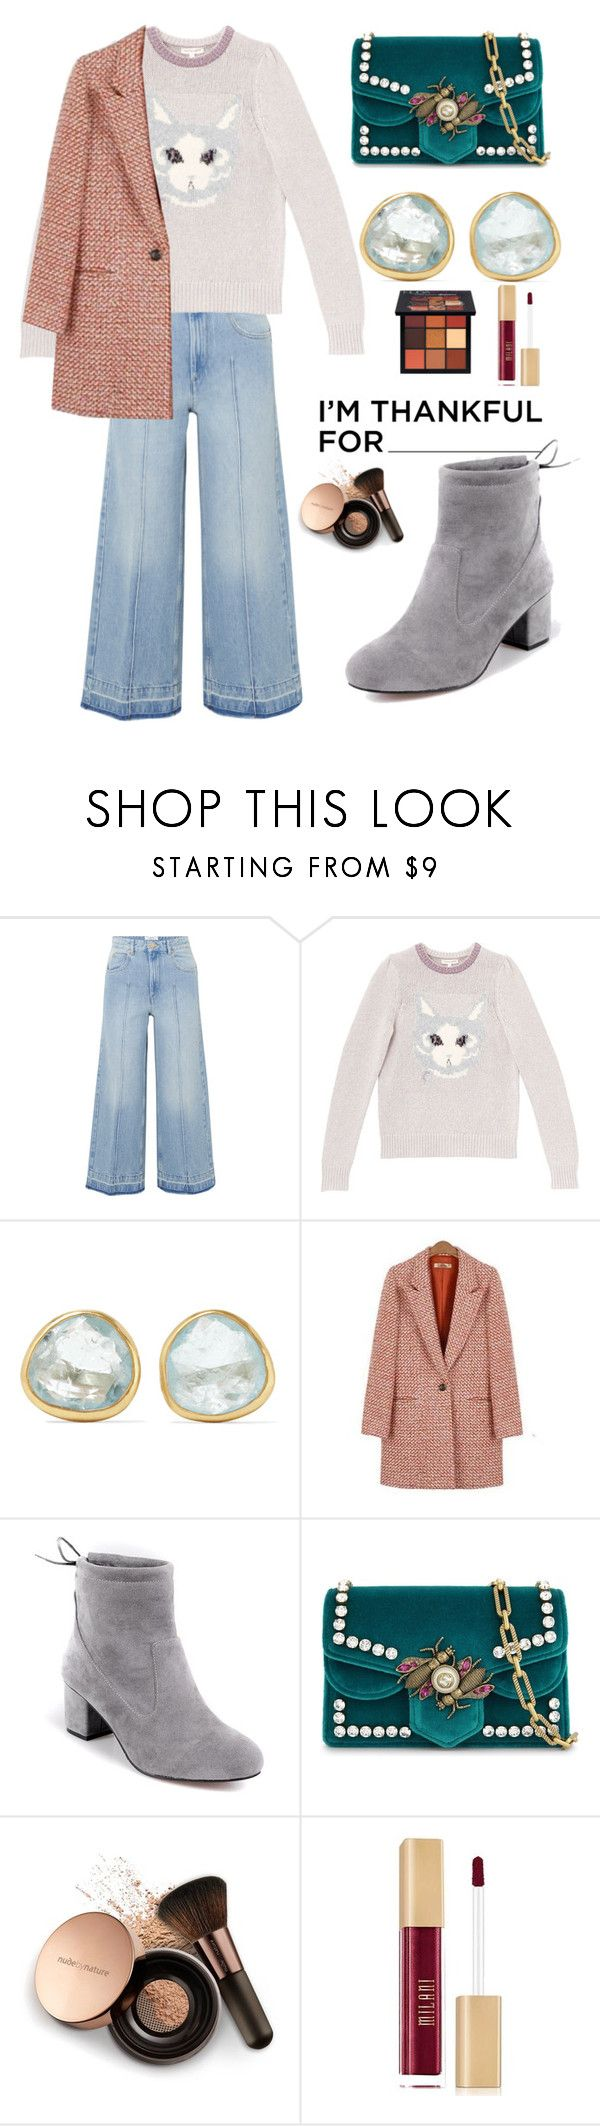 """uncle"" by explorer-14666874685 ❤ liked on Polyvore featuring Étoile Isabel Marant, Rebecca Taylor, Pippa Small, Gucci, Nude by Nature and Huda Beauty"